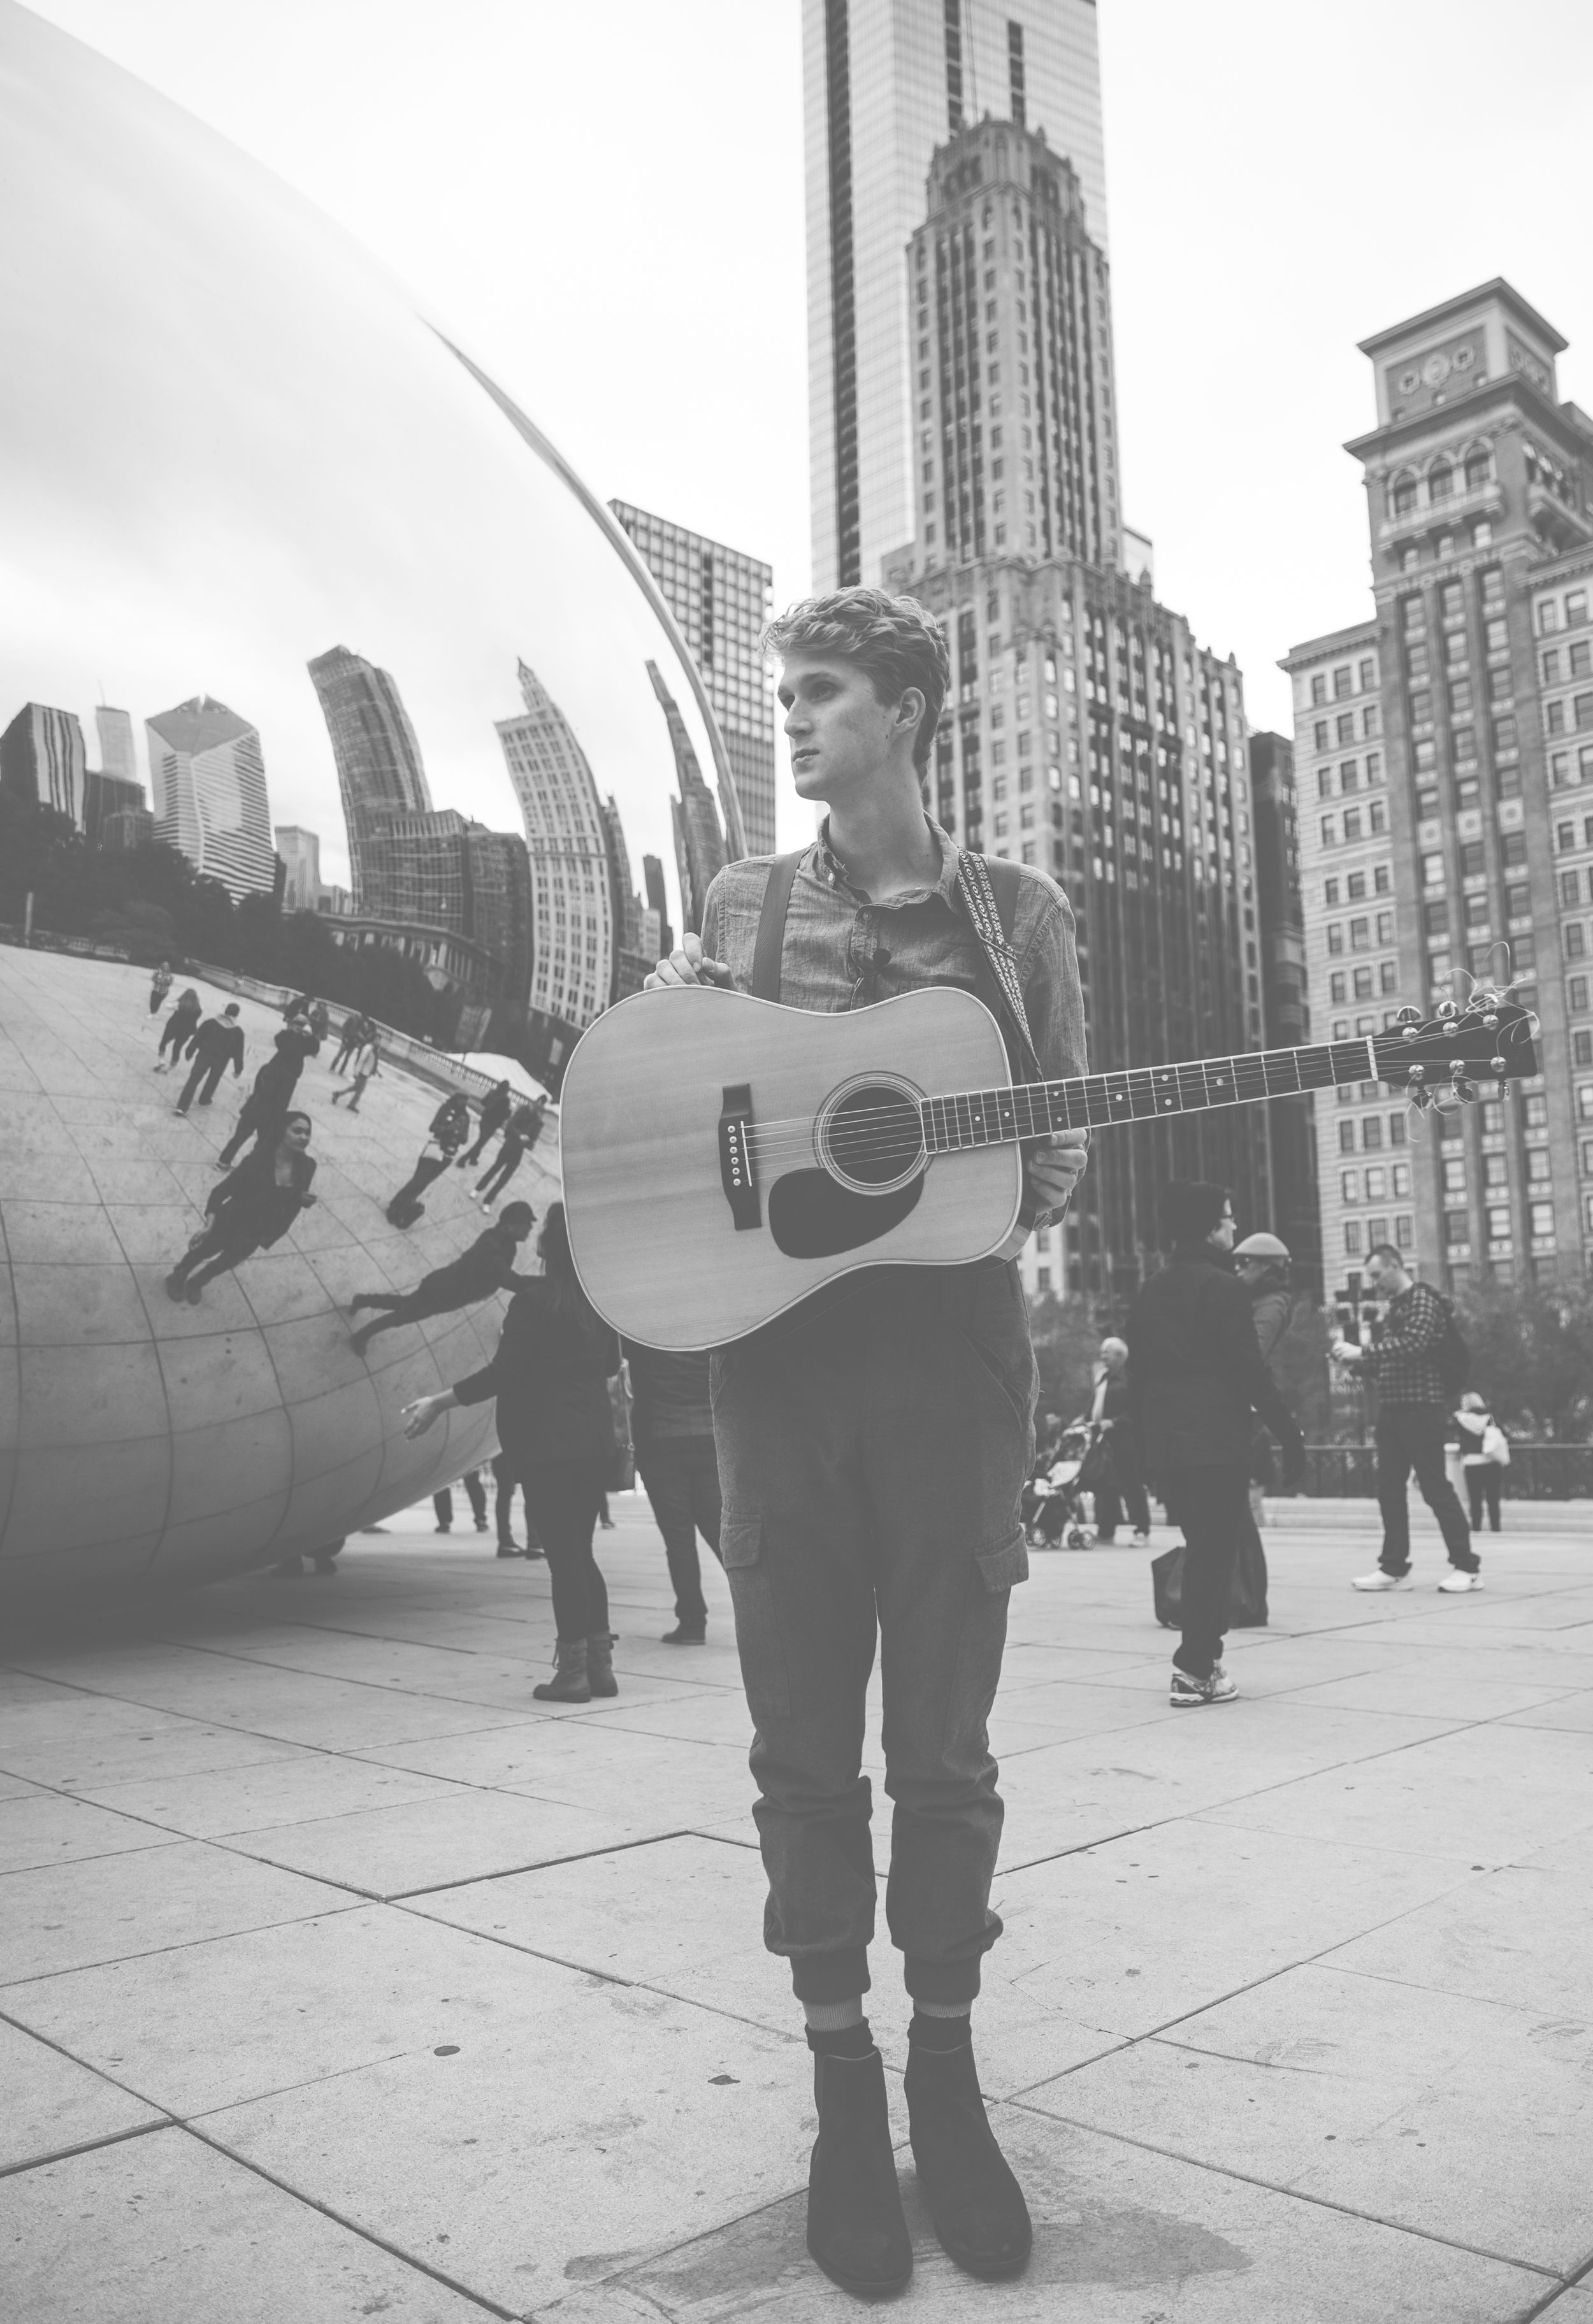 busking on the streets of Chicago. Oct. 2015.